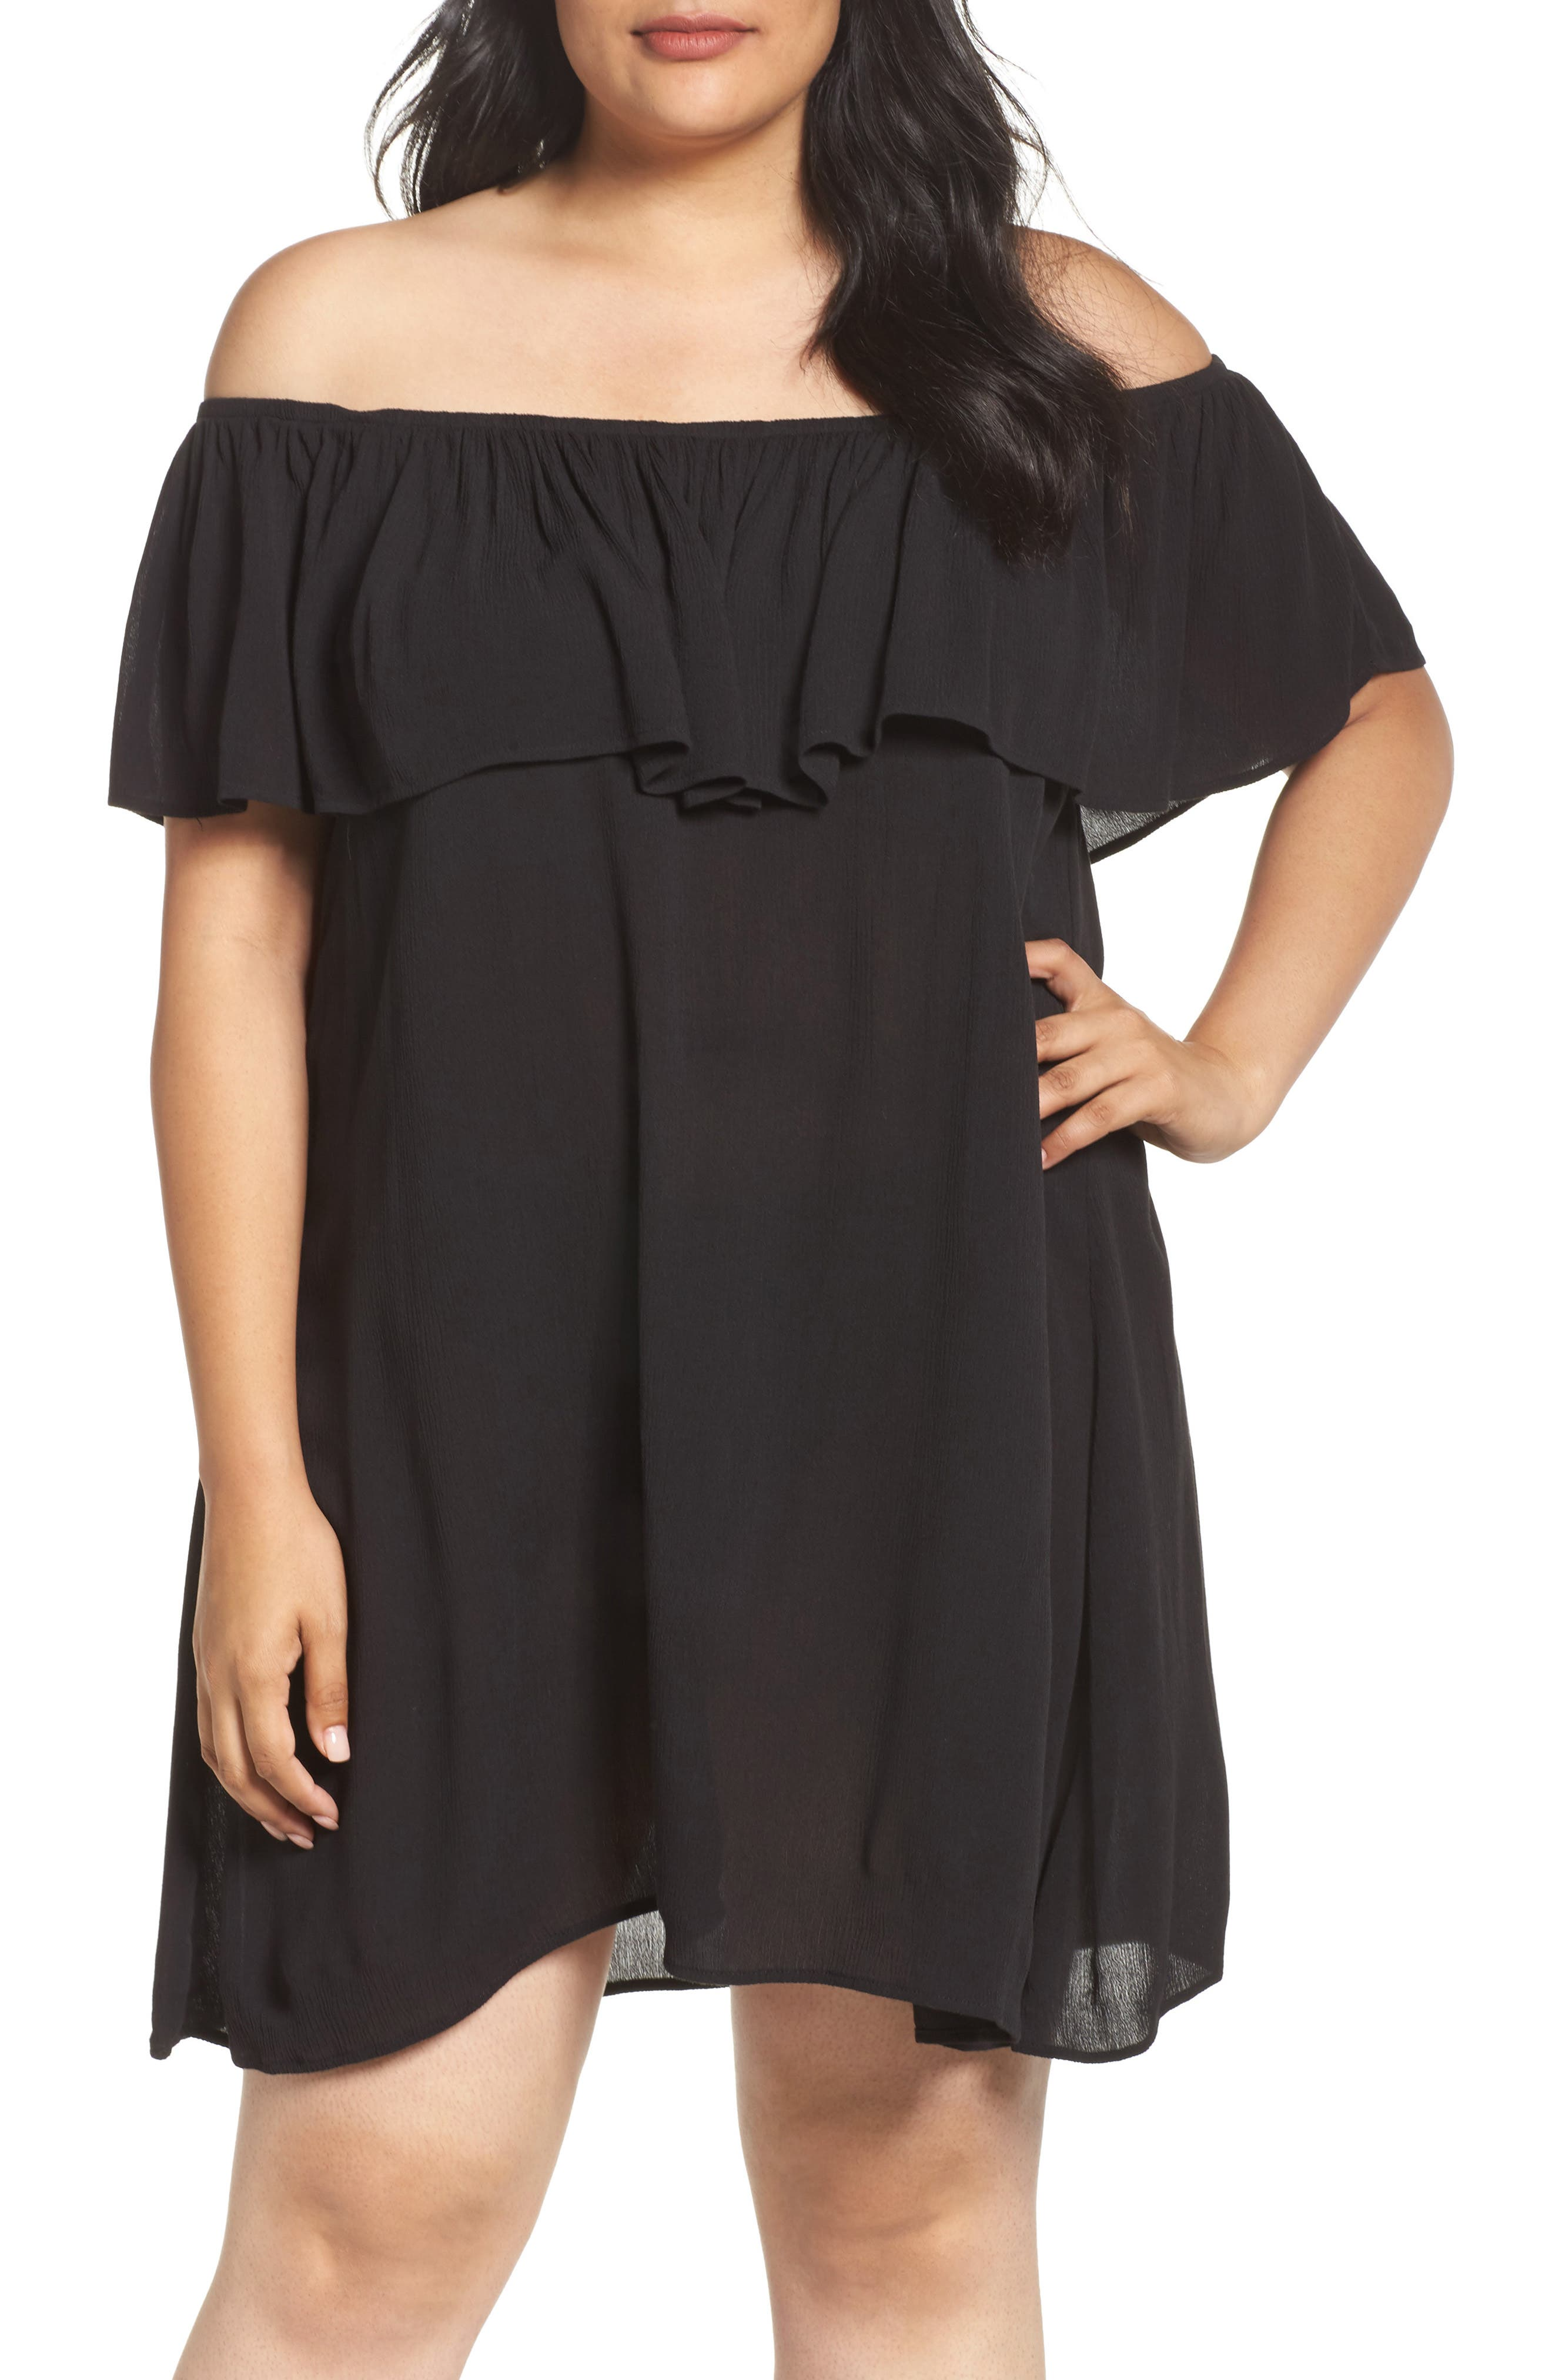 Alternate Image 1 Selected - Becca Etc. Southern Belle Off the Shoulder Cover-Up Dress (Plus Size)